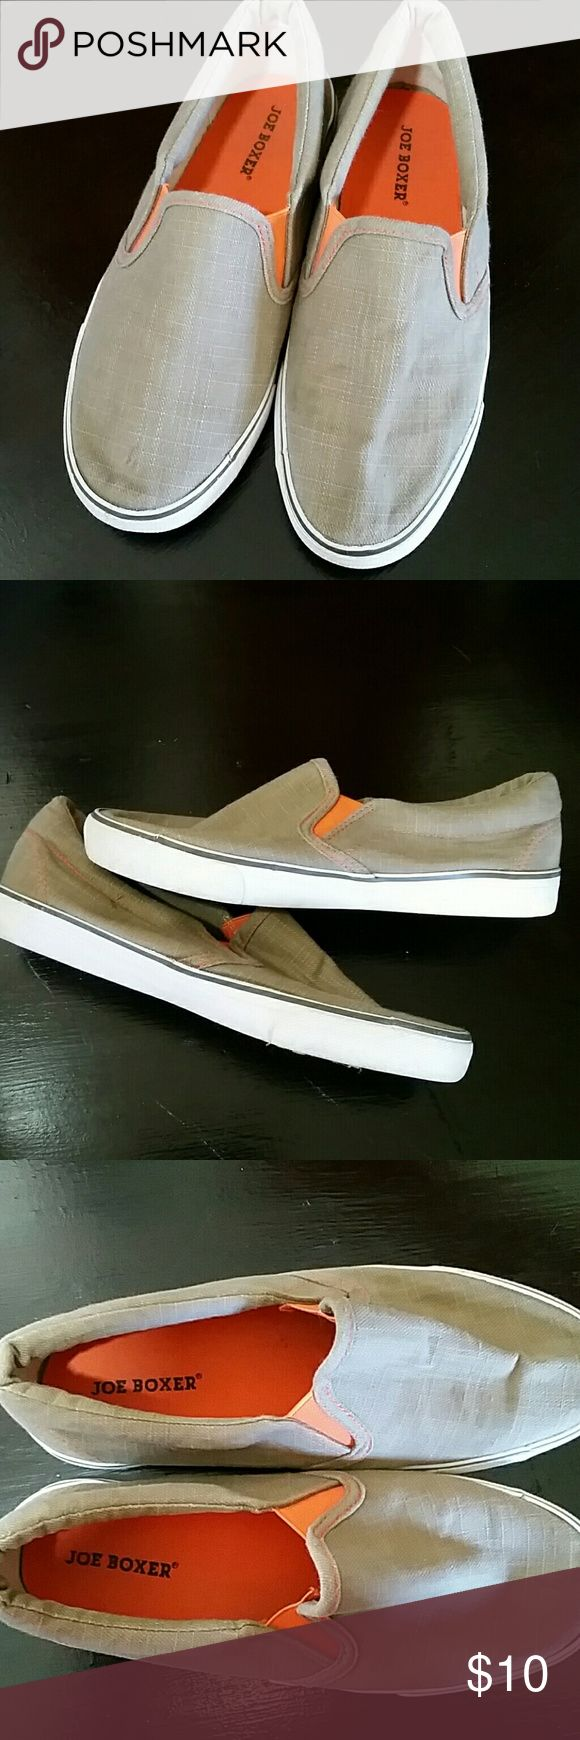 Joe boxer slip-on shoes Orange and tan, comfortable, stylish loafers. Boys 6, ladies 8. Worn only a few times. Too tight for my son now. Comes from smoke free home. JOE BOXER Shoes Flats & Loafers